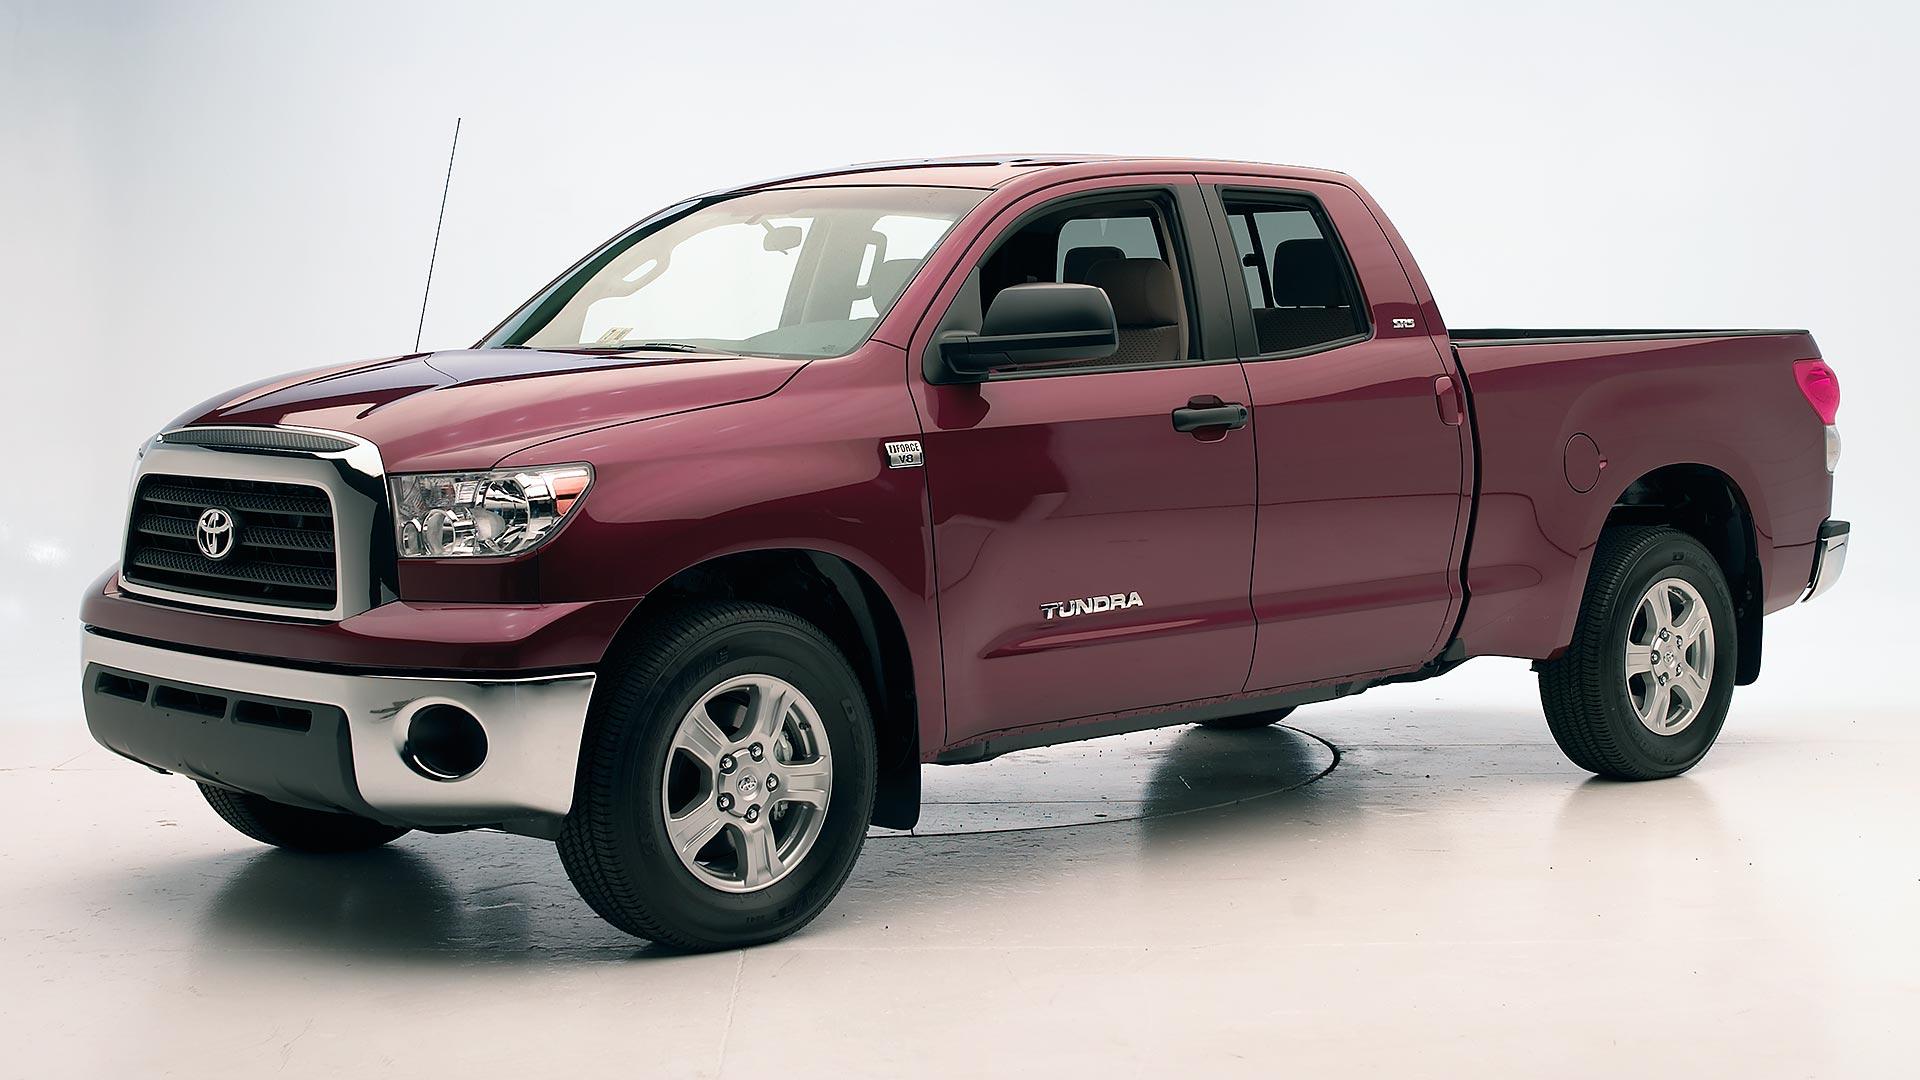 2010 Toyota Tundra Extended cab pickup